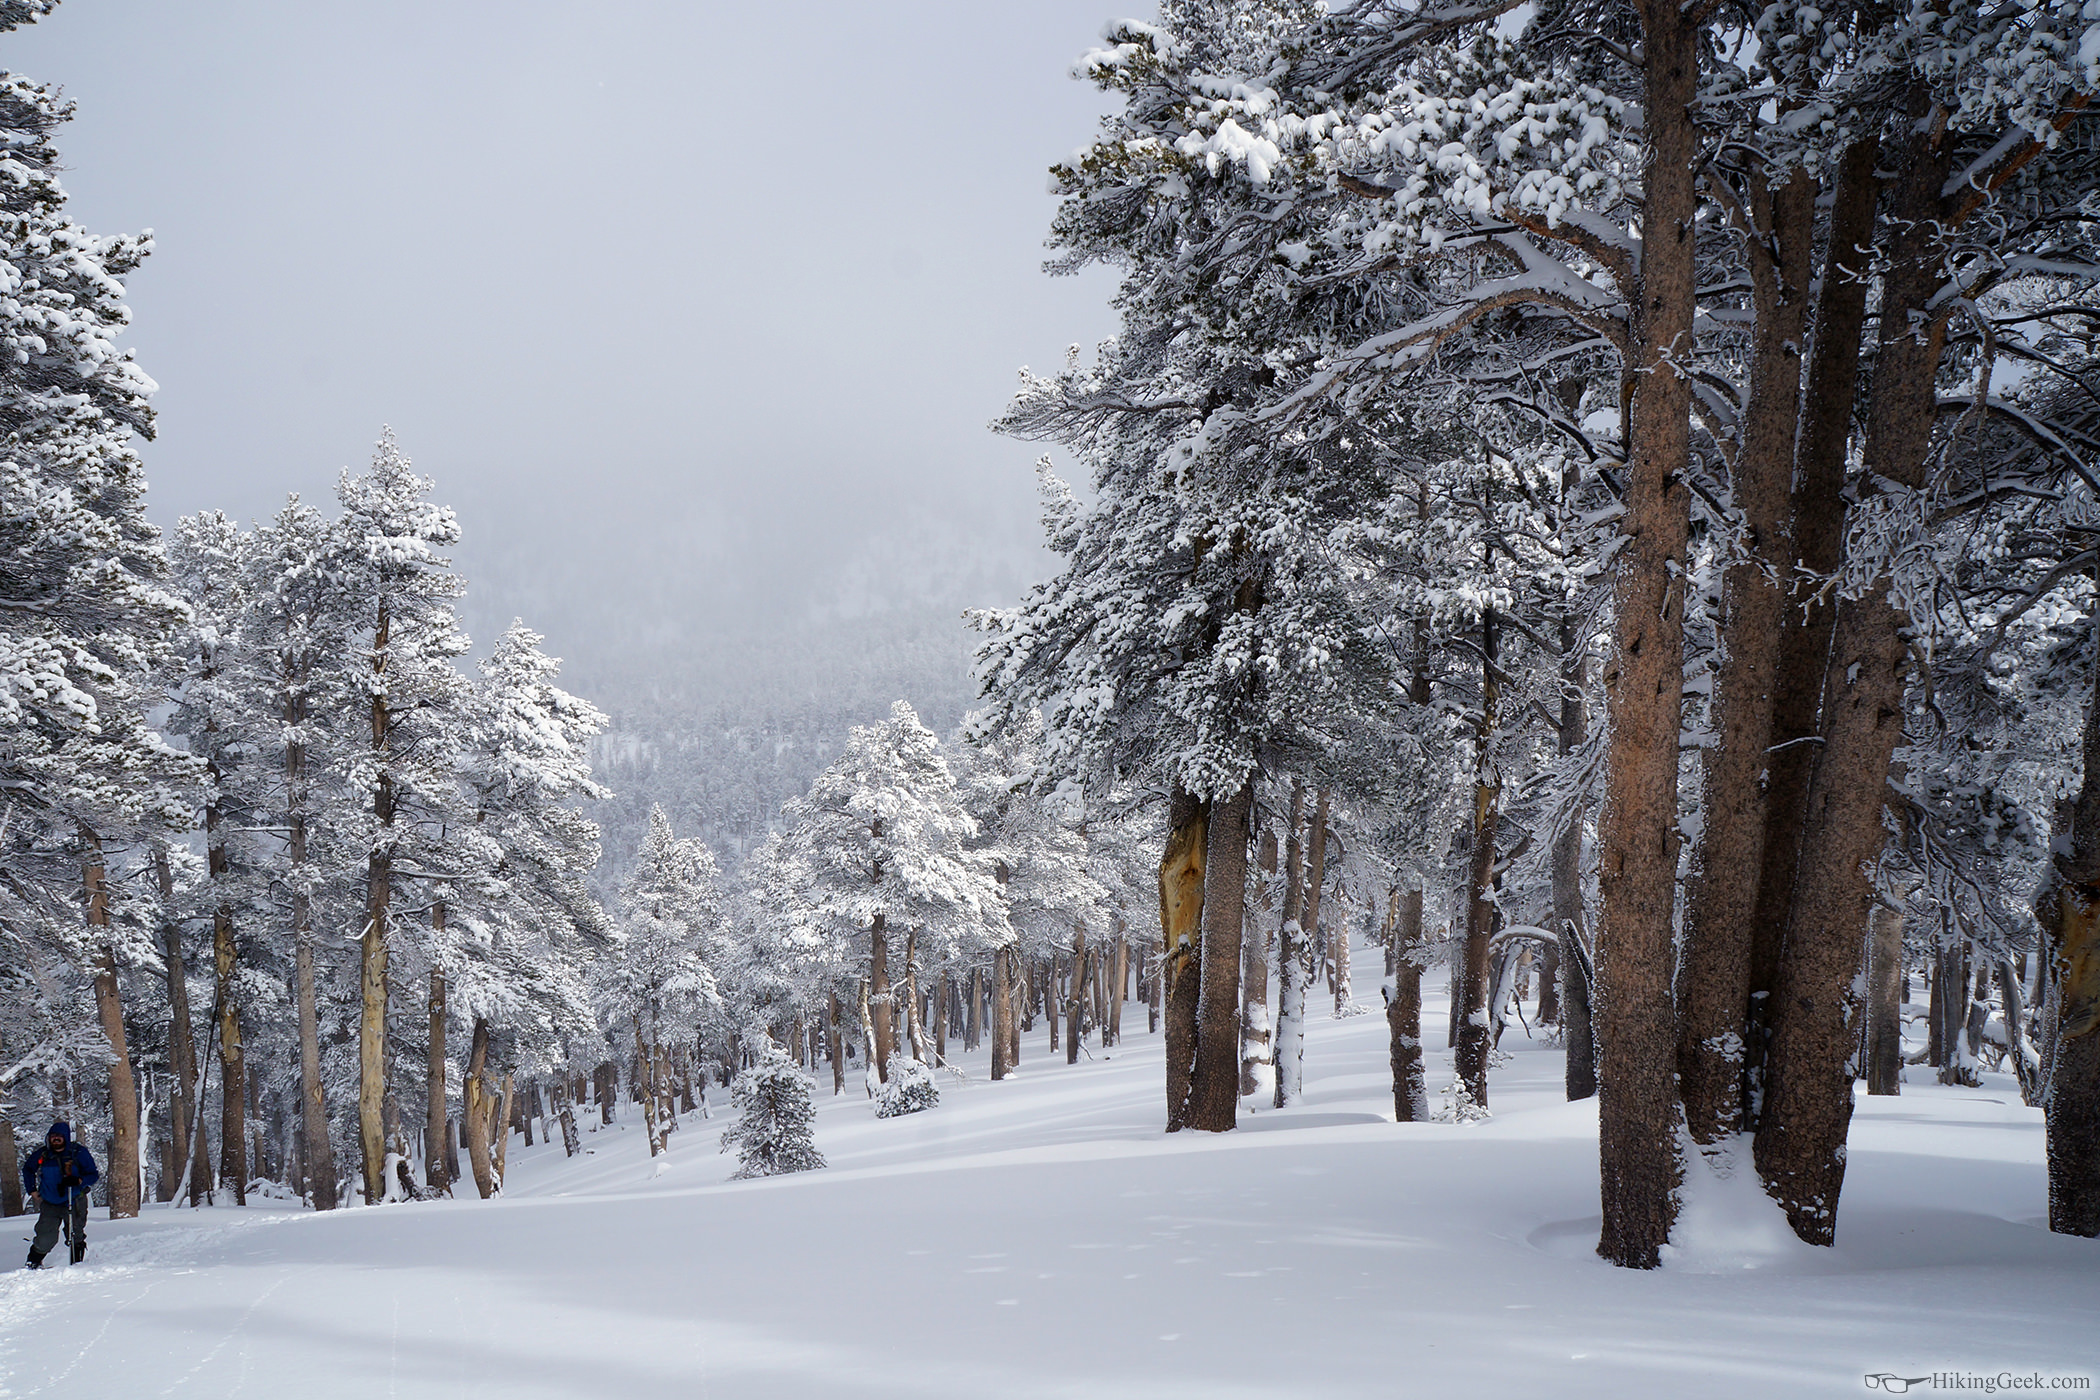 Charlton Peak Snowshoe, Jan 31 2015